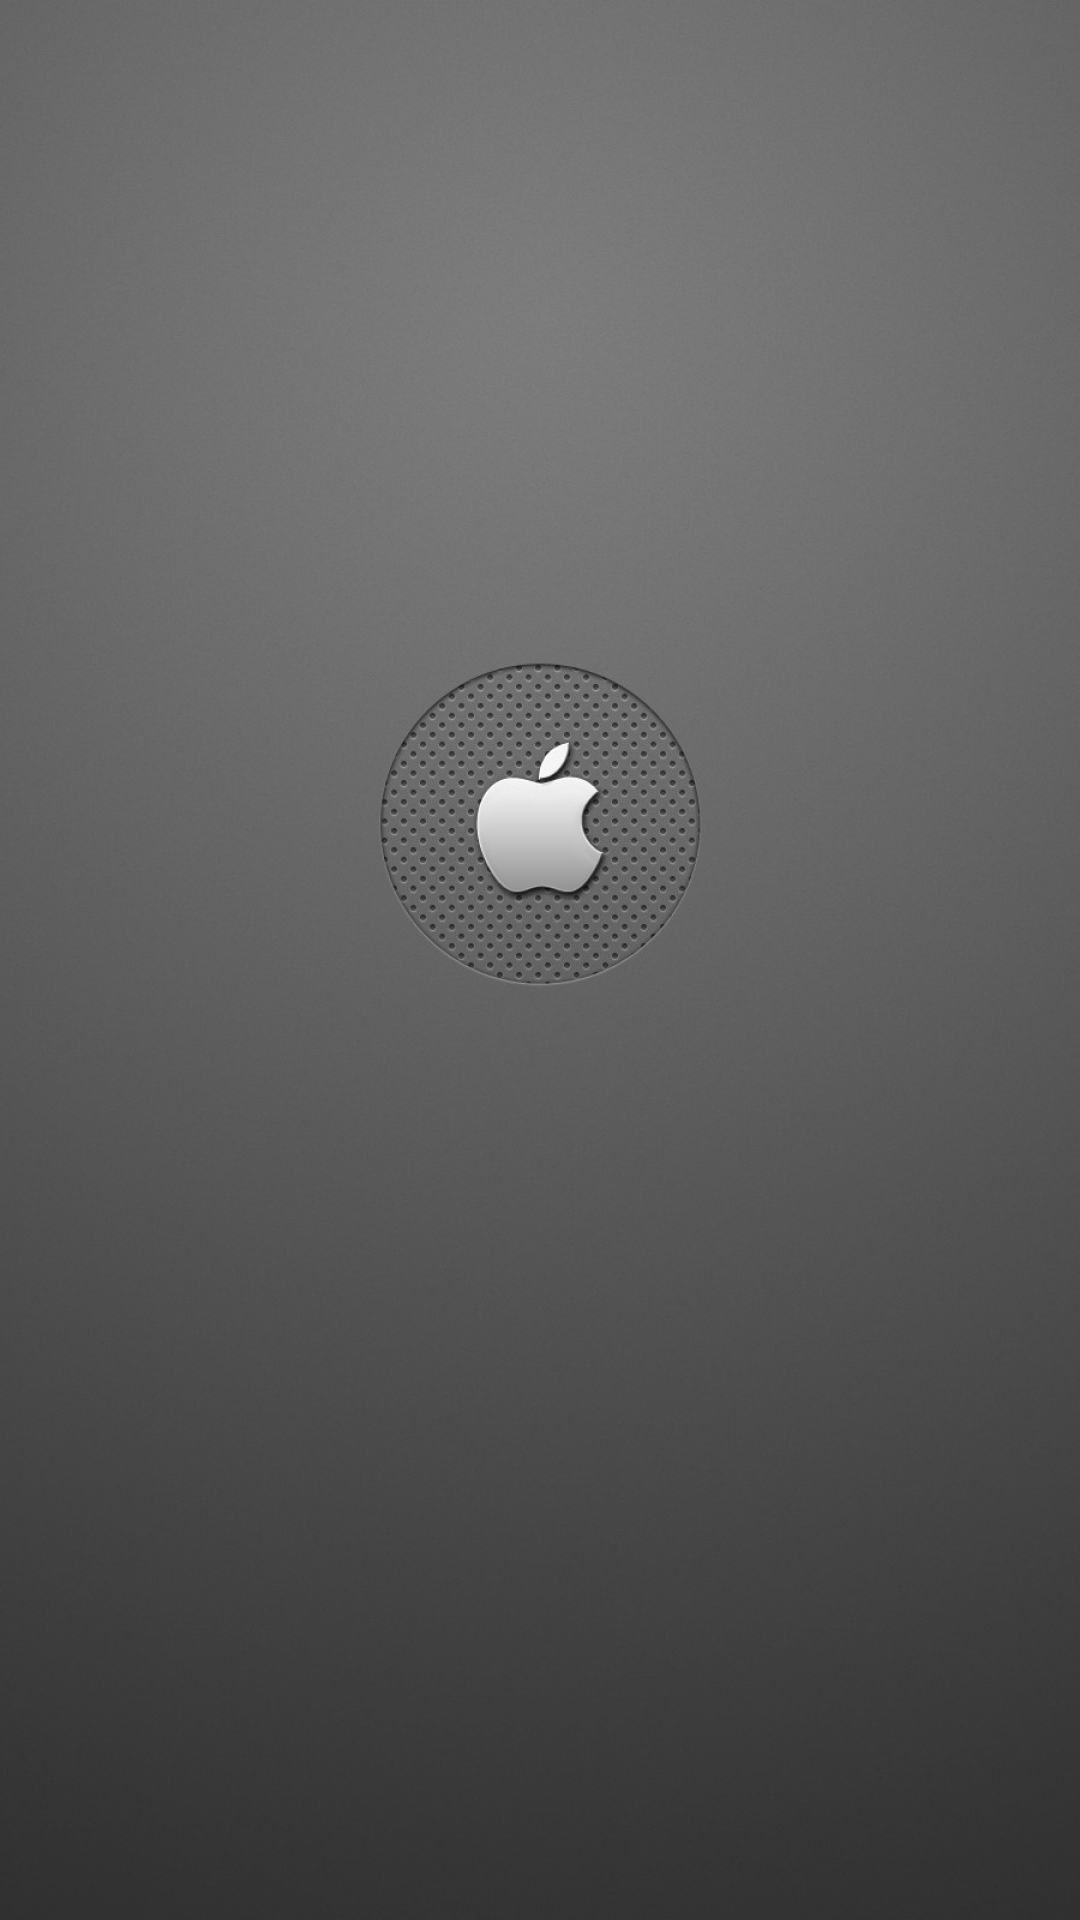 apple logo hd wallpaper for iphone | wallpaper.wiki